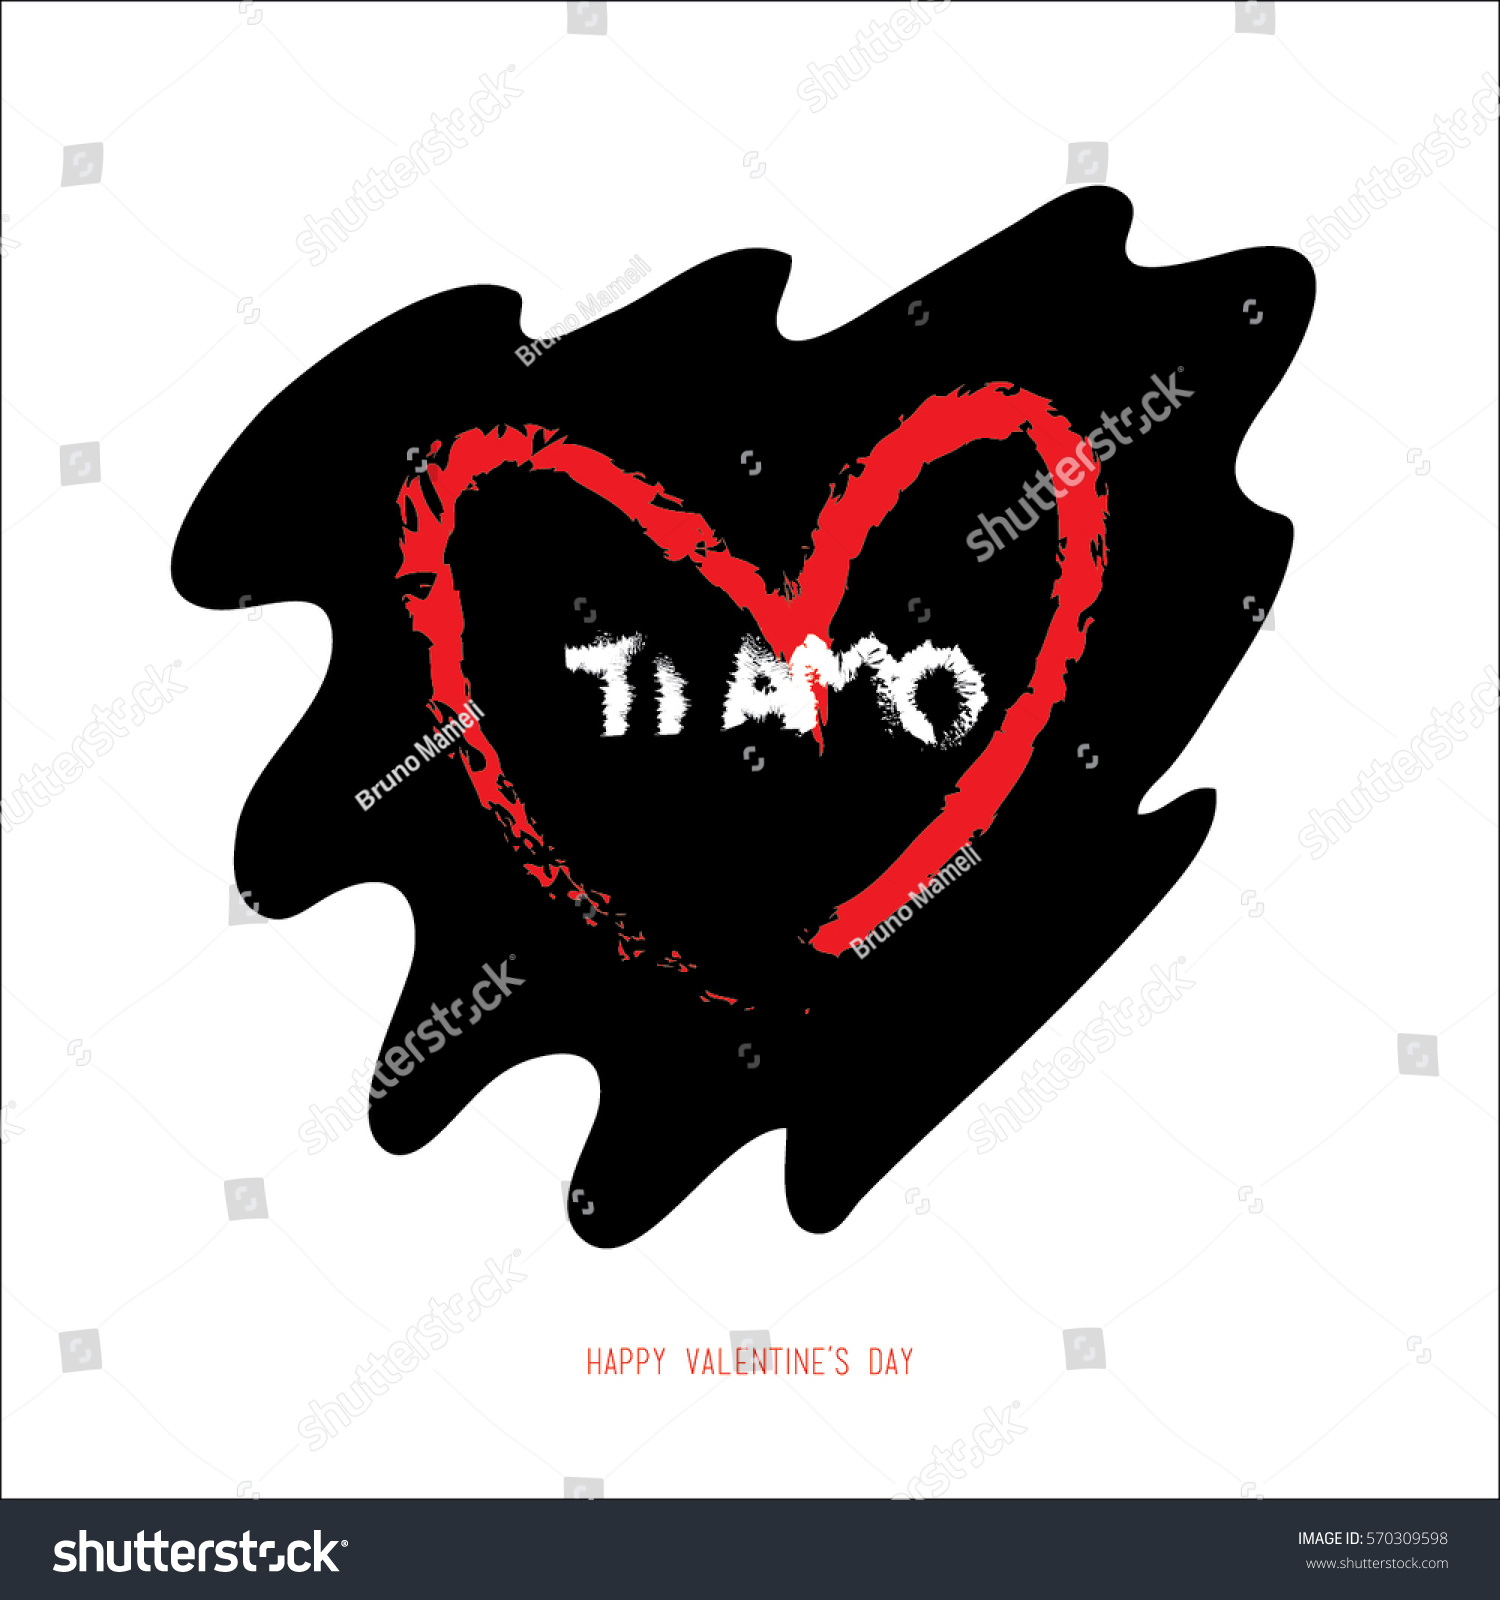 Hand Drawing Valentines Day Romantic Greeting Stock Vector Royalty